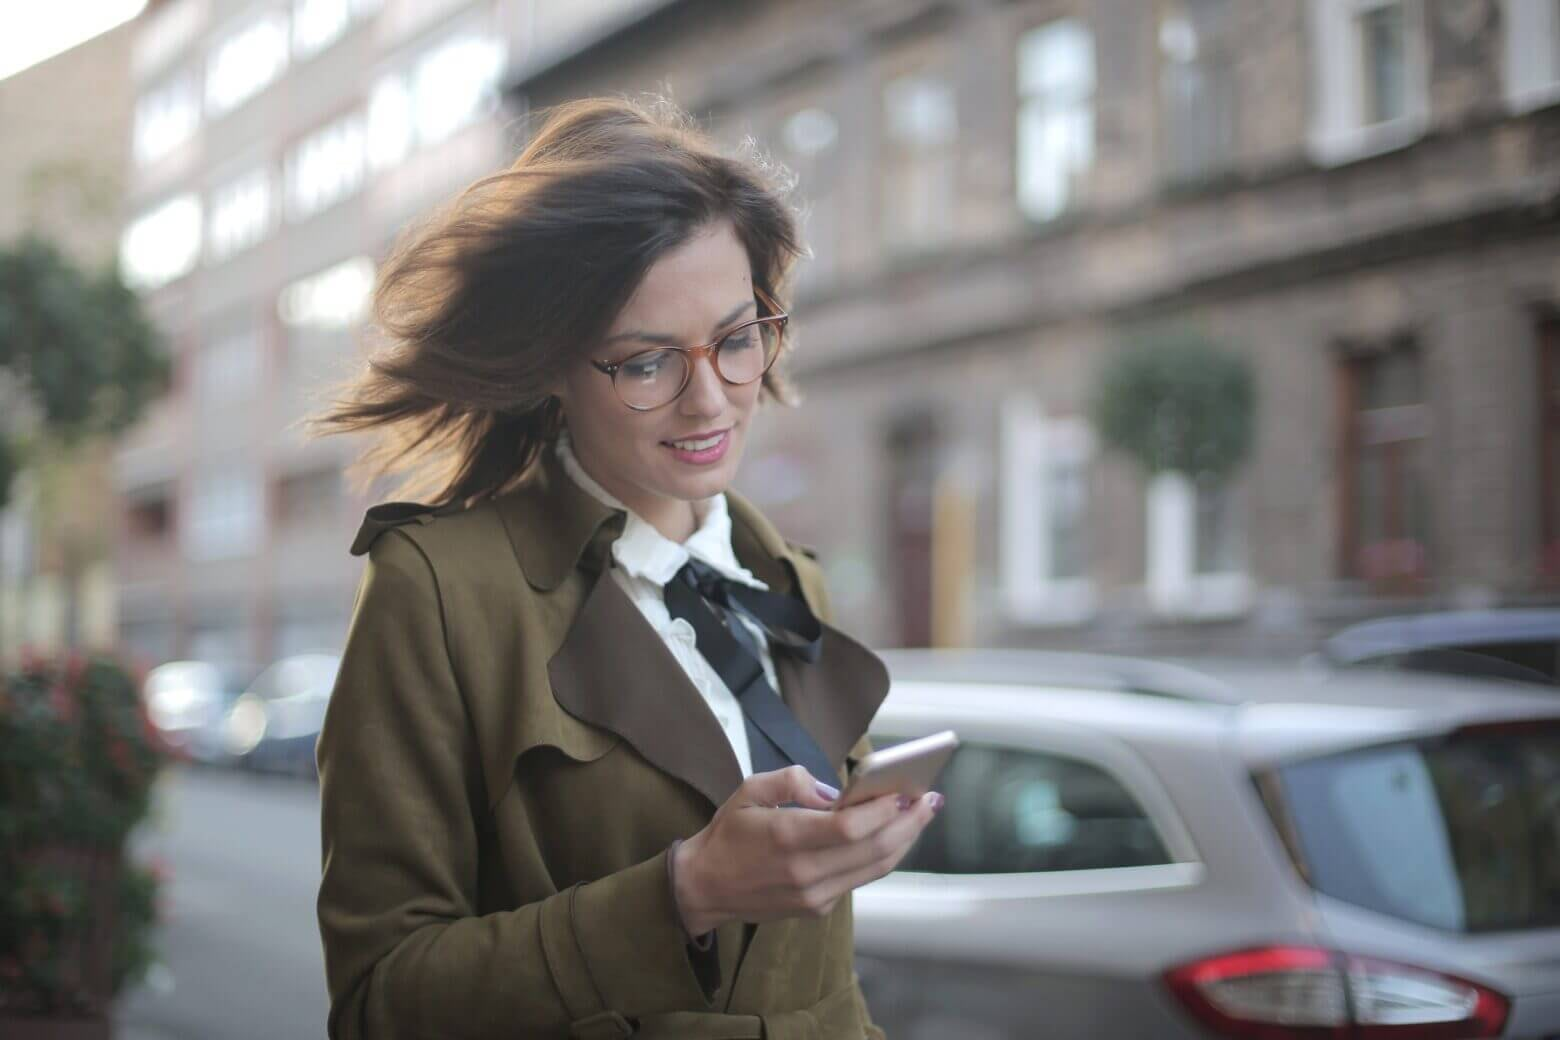 5 Best Apps For iPhone That Every Female Should Download